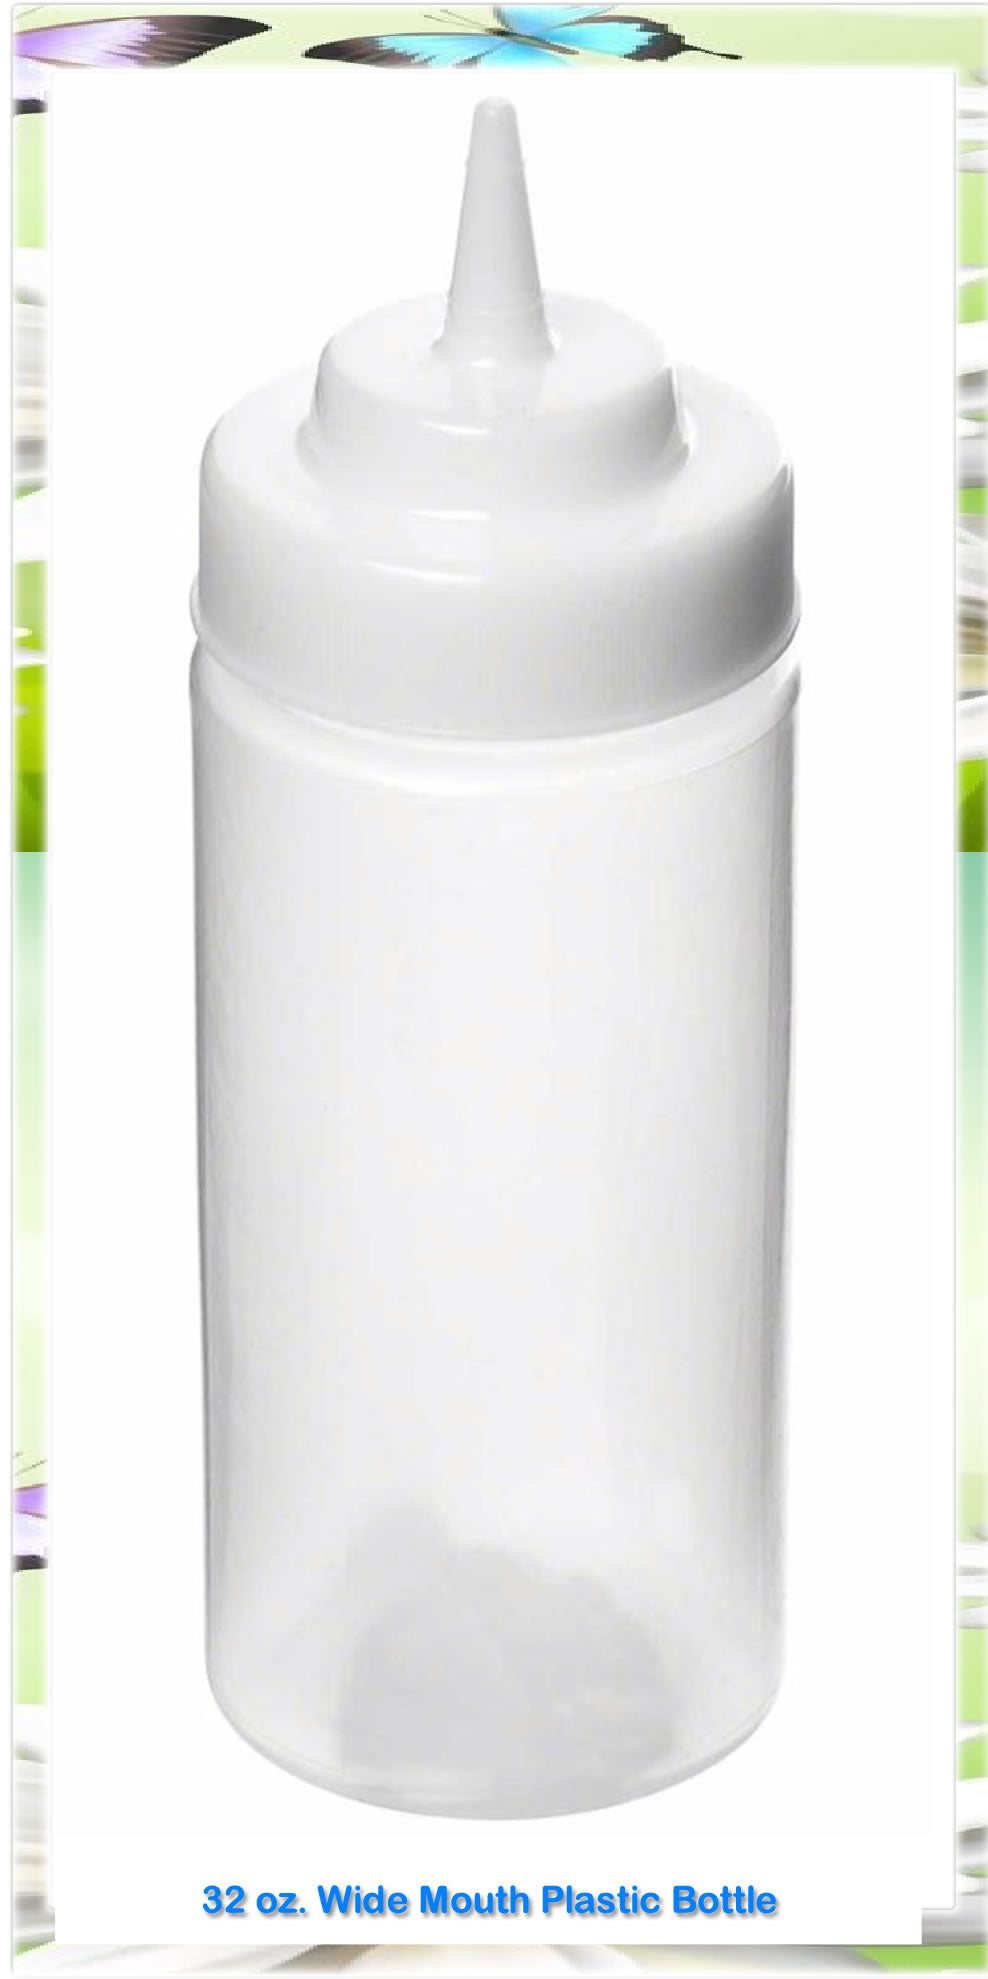 Squeeze Plastic Bottle, Wide Mouth, 32 oz, Clear-virtually leak-free!